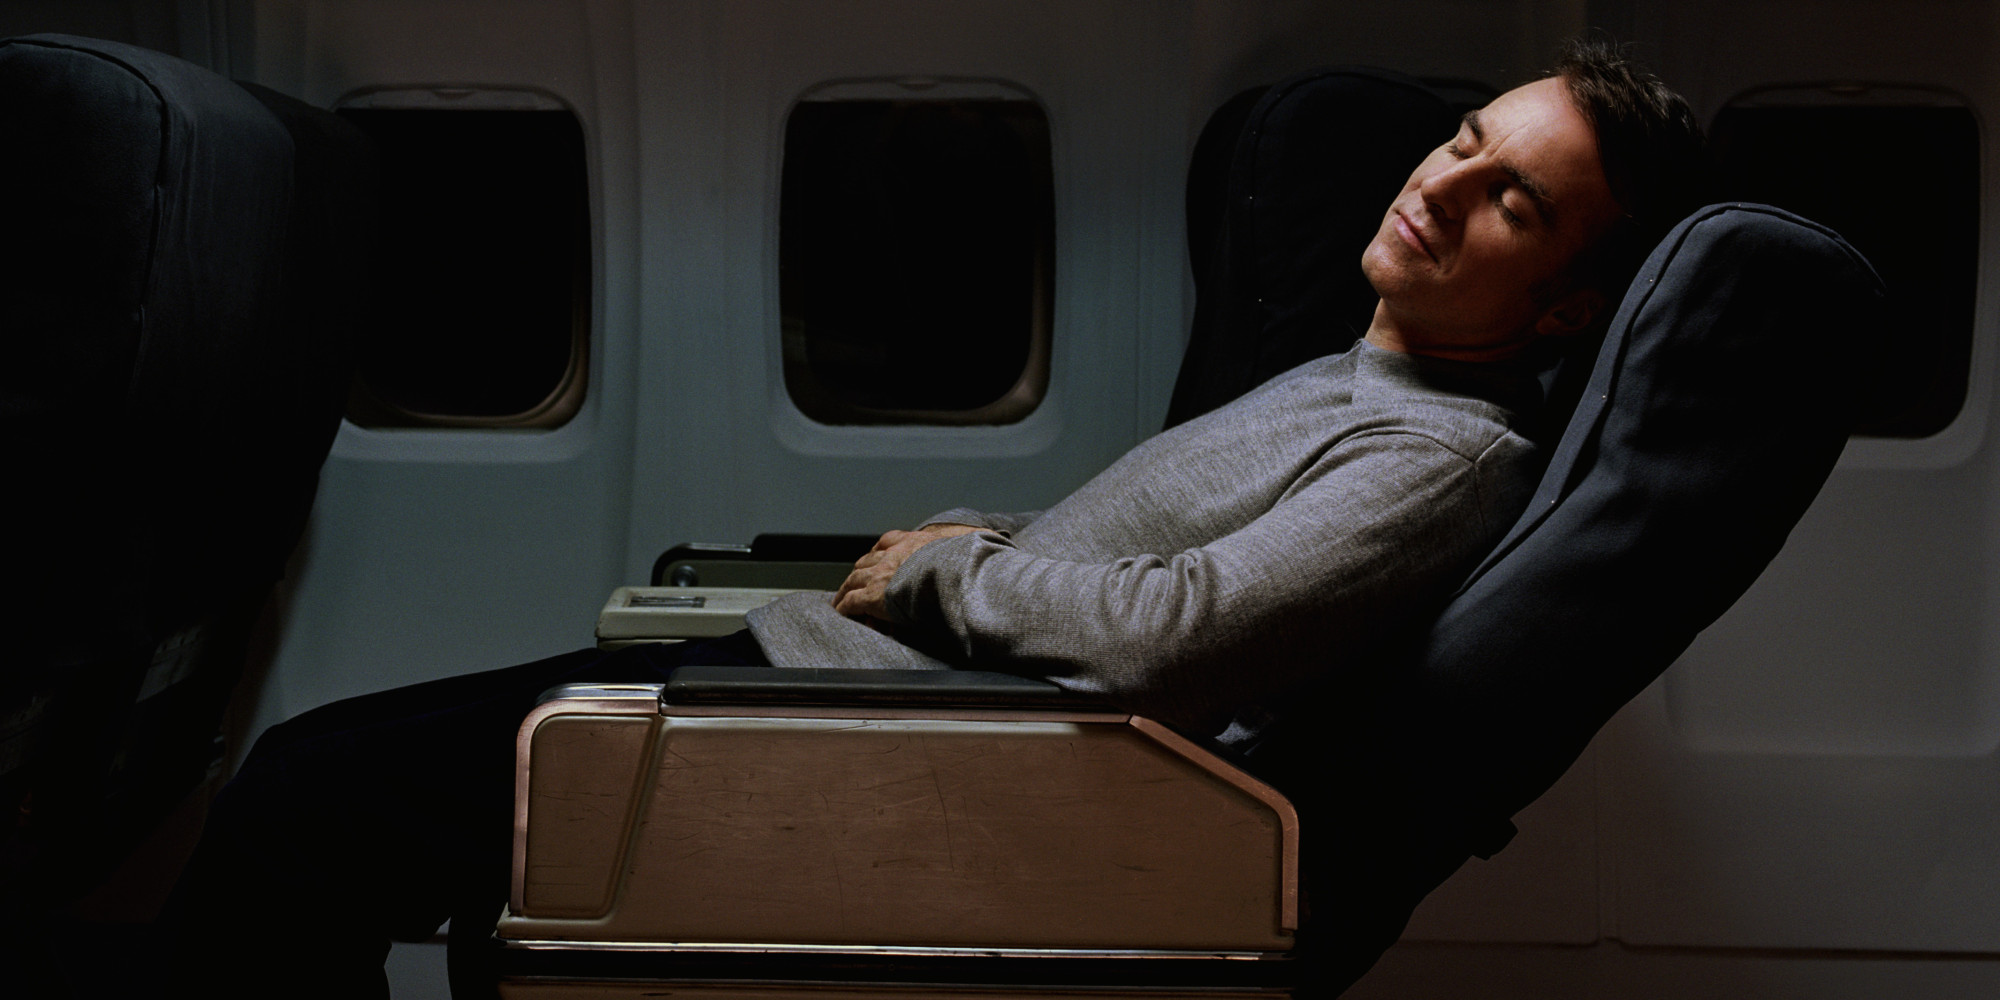 man sleeping on plane